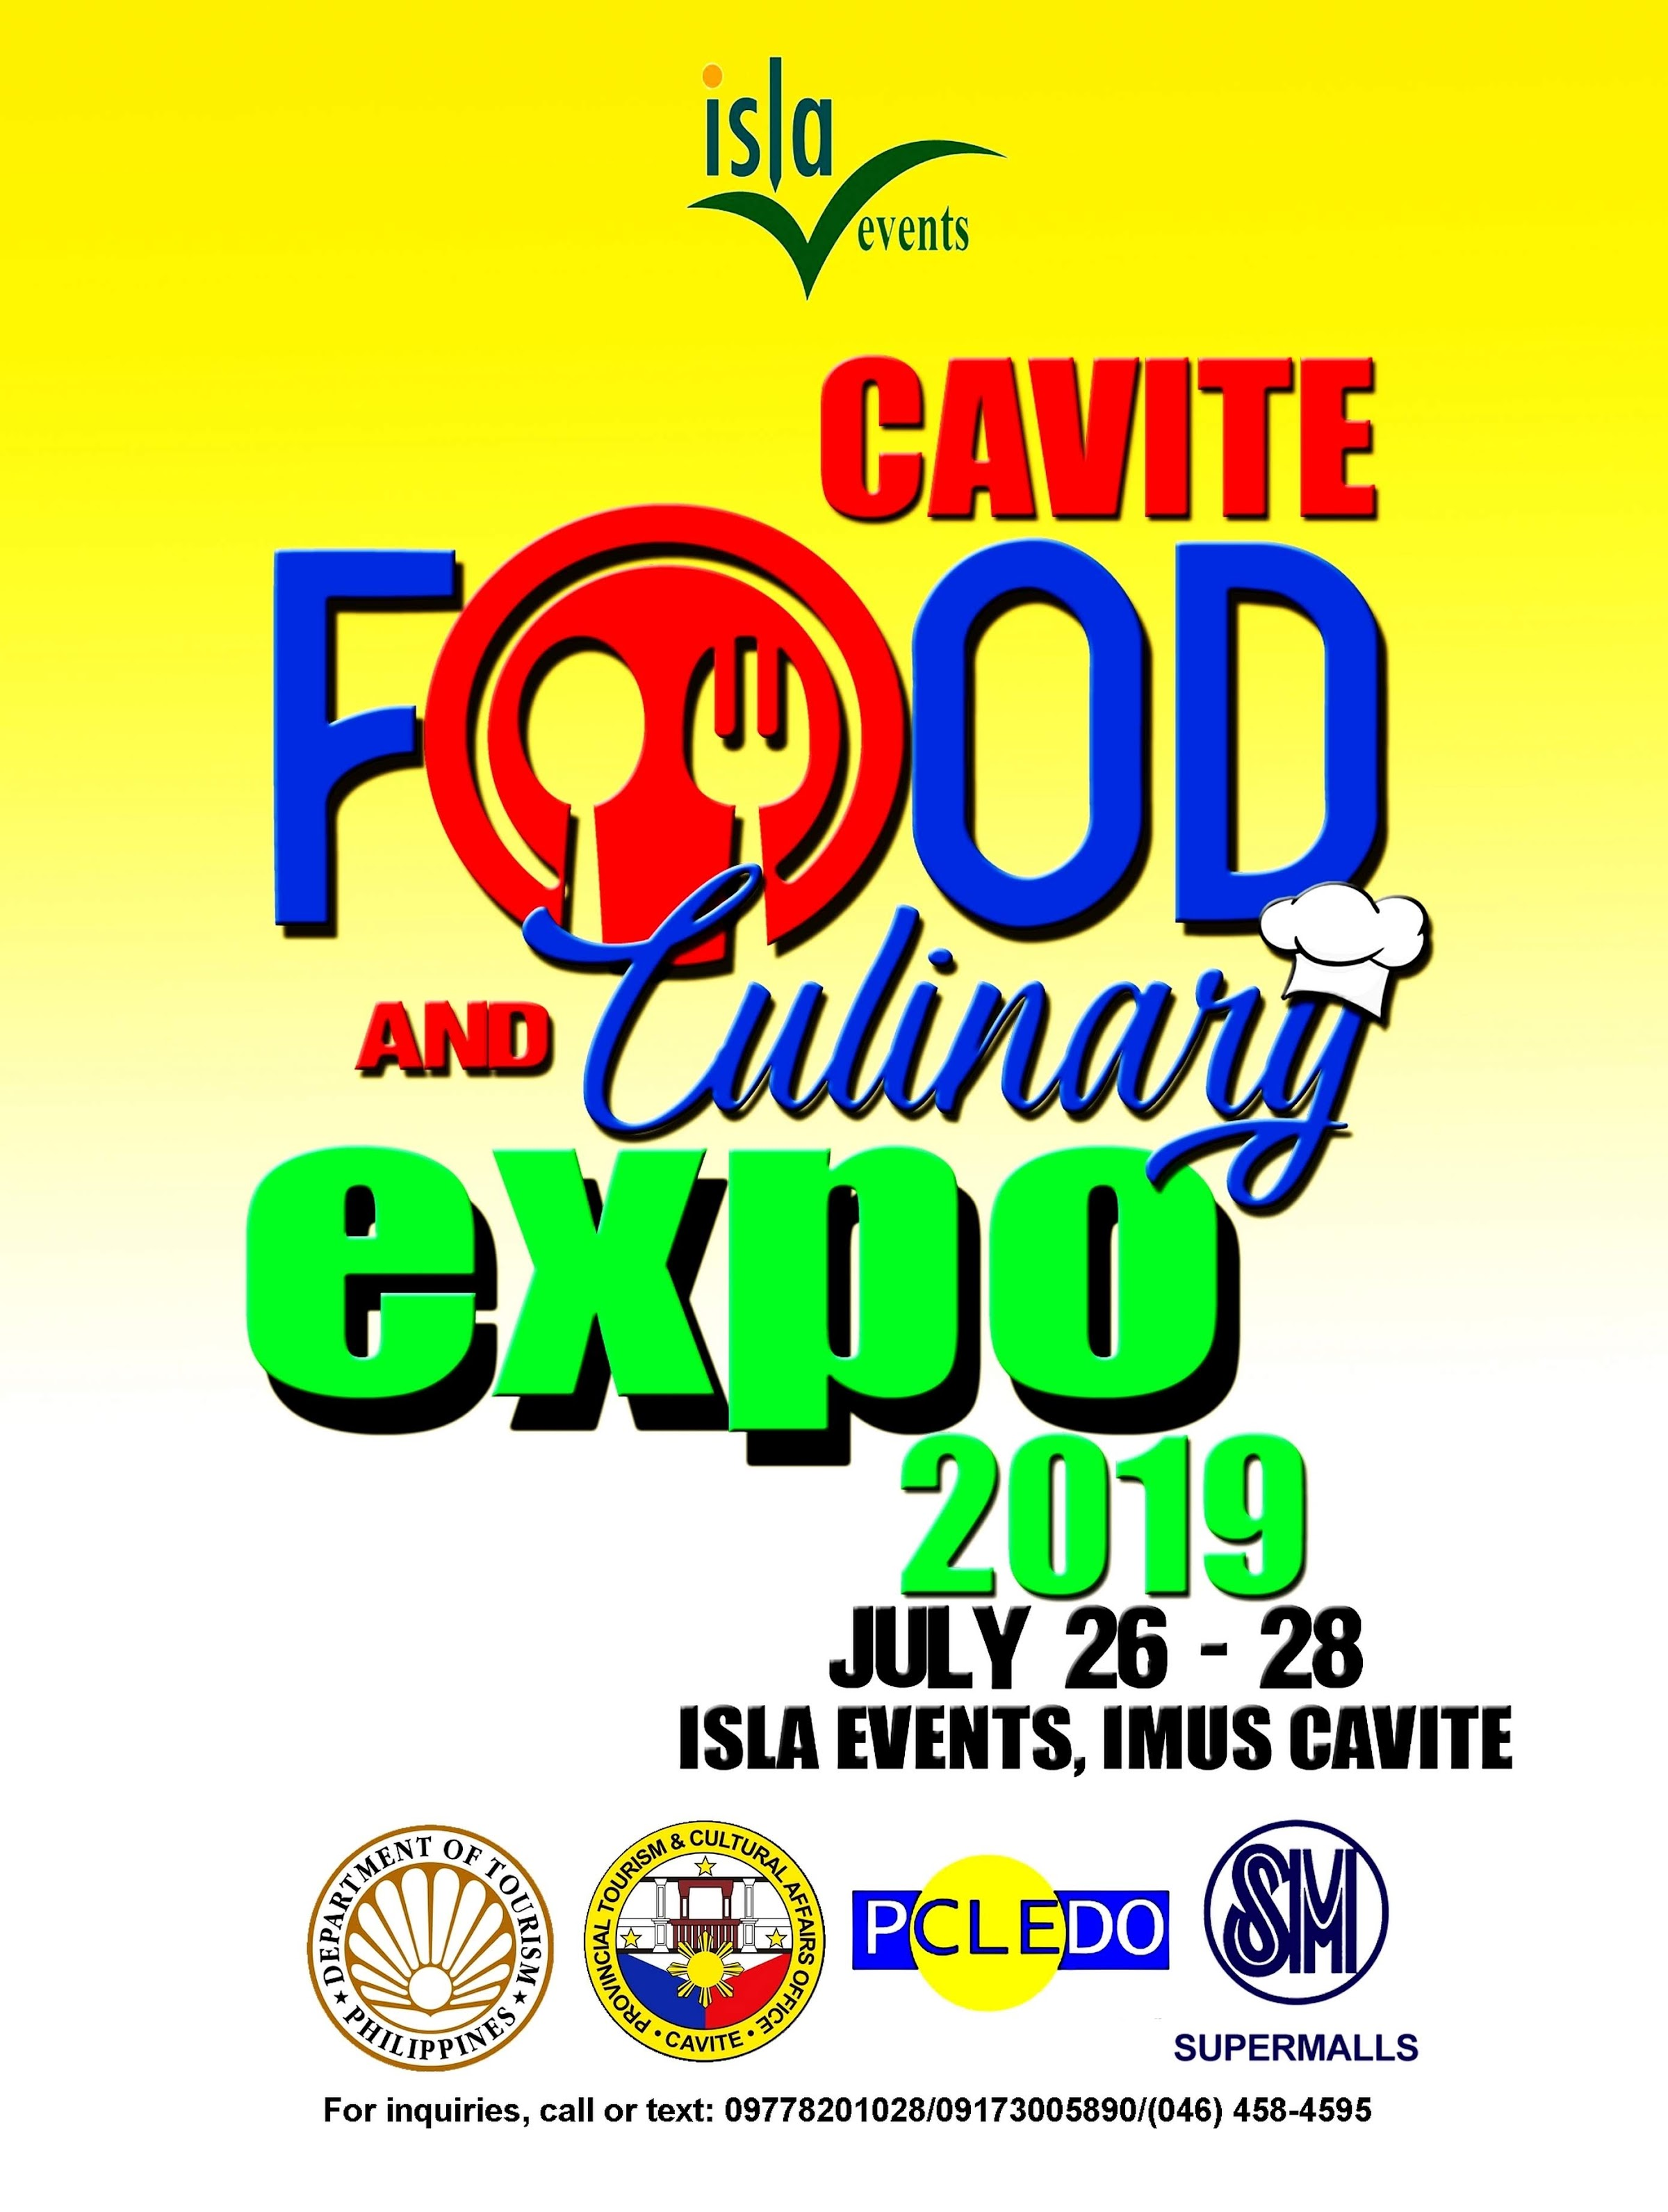 Schedule of Events at Cavite Food and Culinary Expo 2019